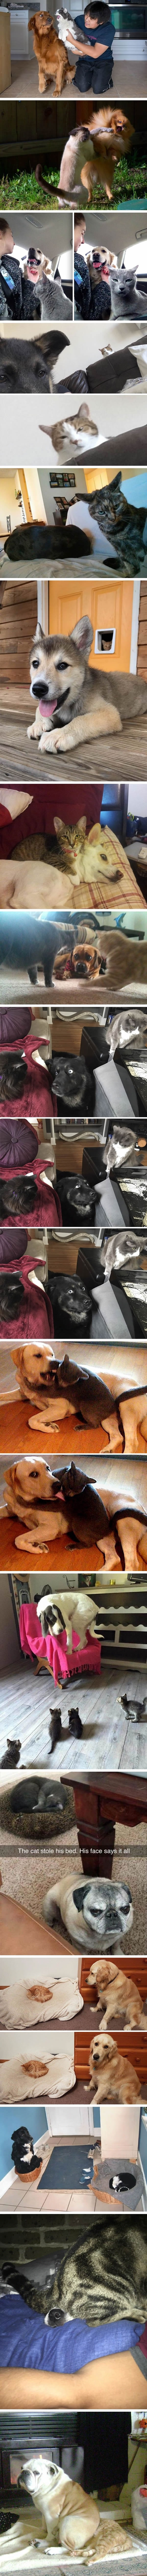 Cats and dogs are the best of enemies